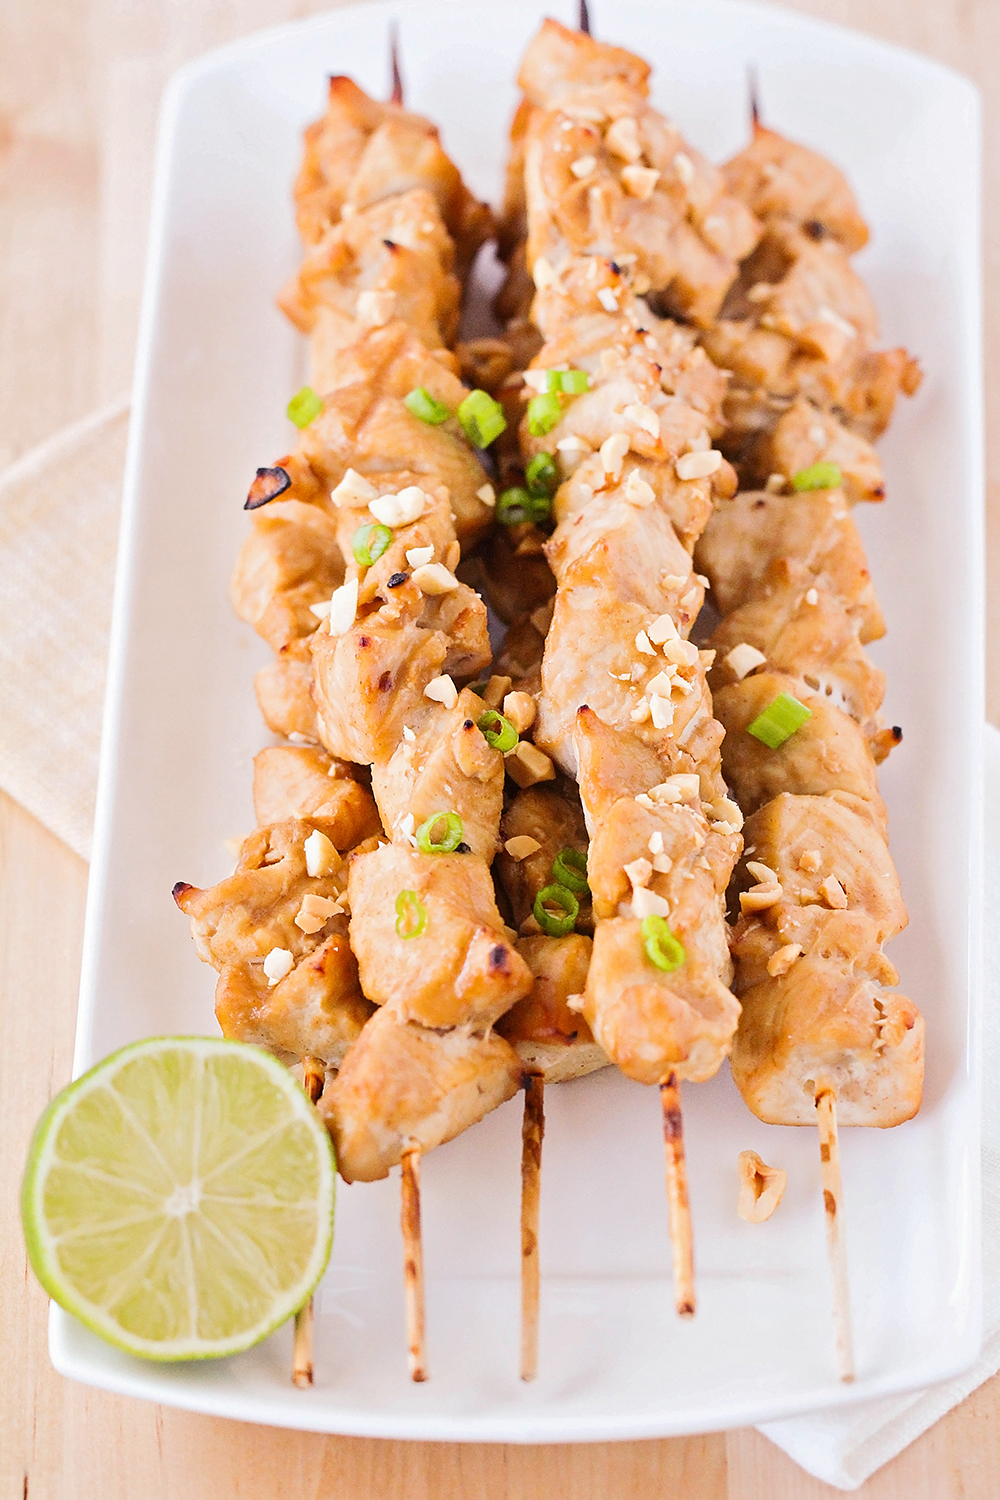 These thai peanut chicken skewers are so delicious and flavorful! They are a quick and easy weeknight dinner that everyone will love!